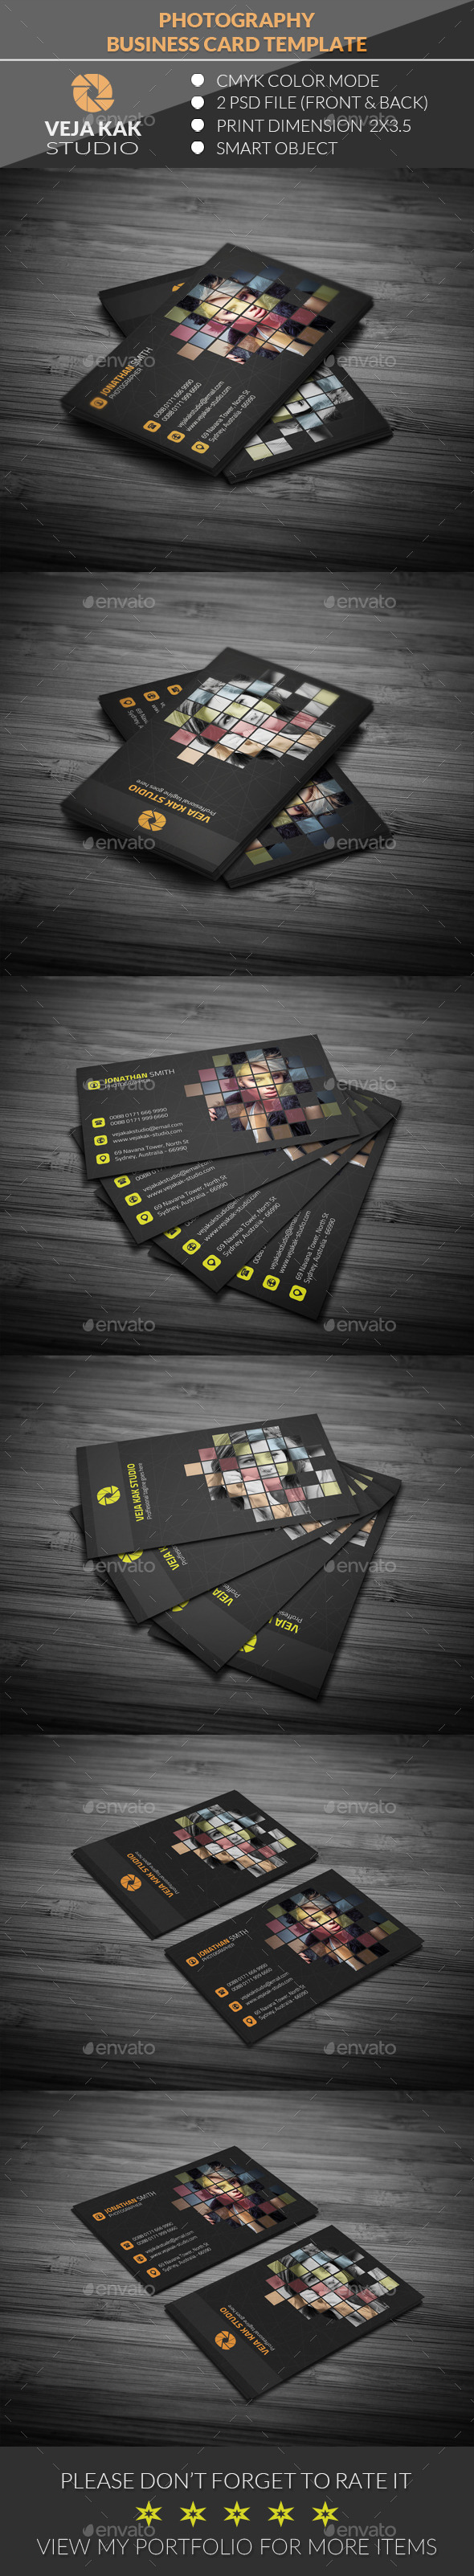 GraphicRiver Photography Business Card 11942535